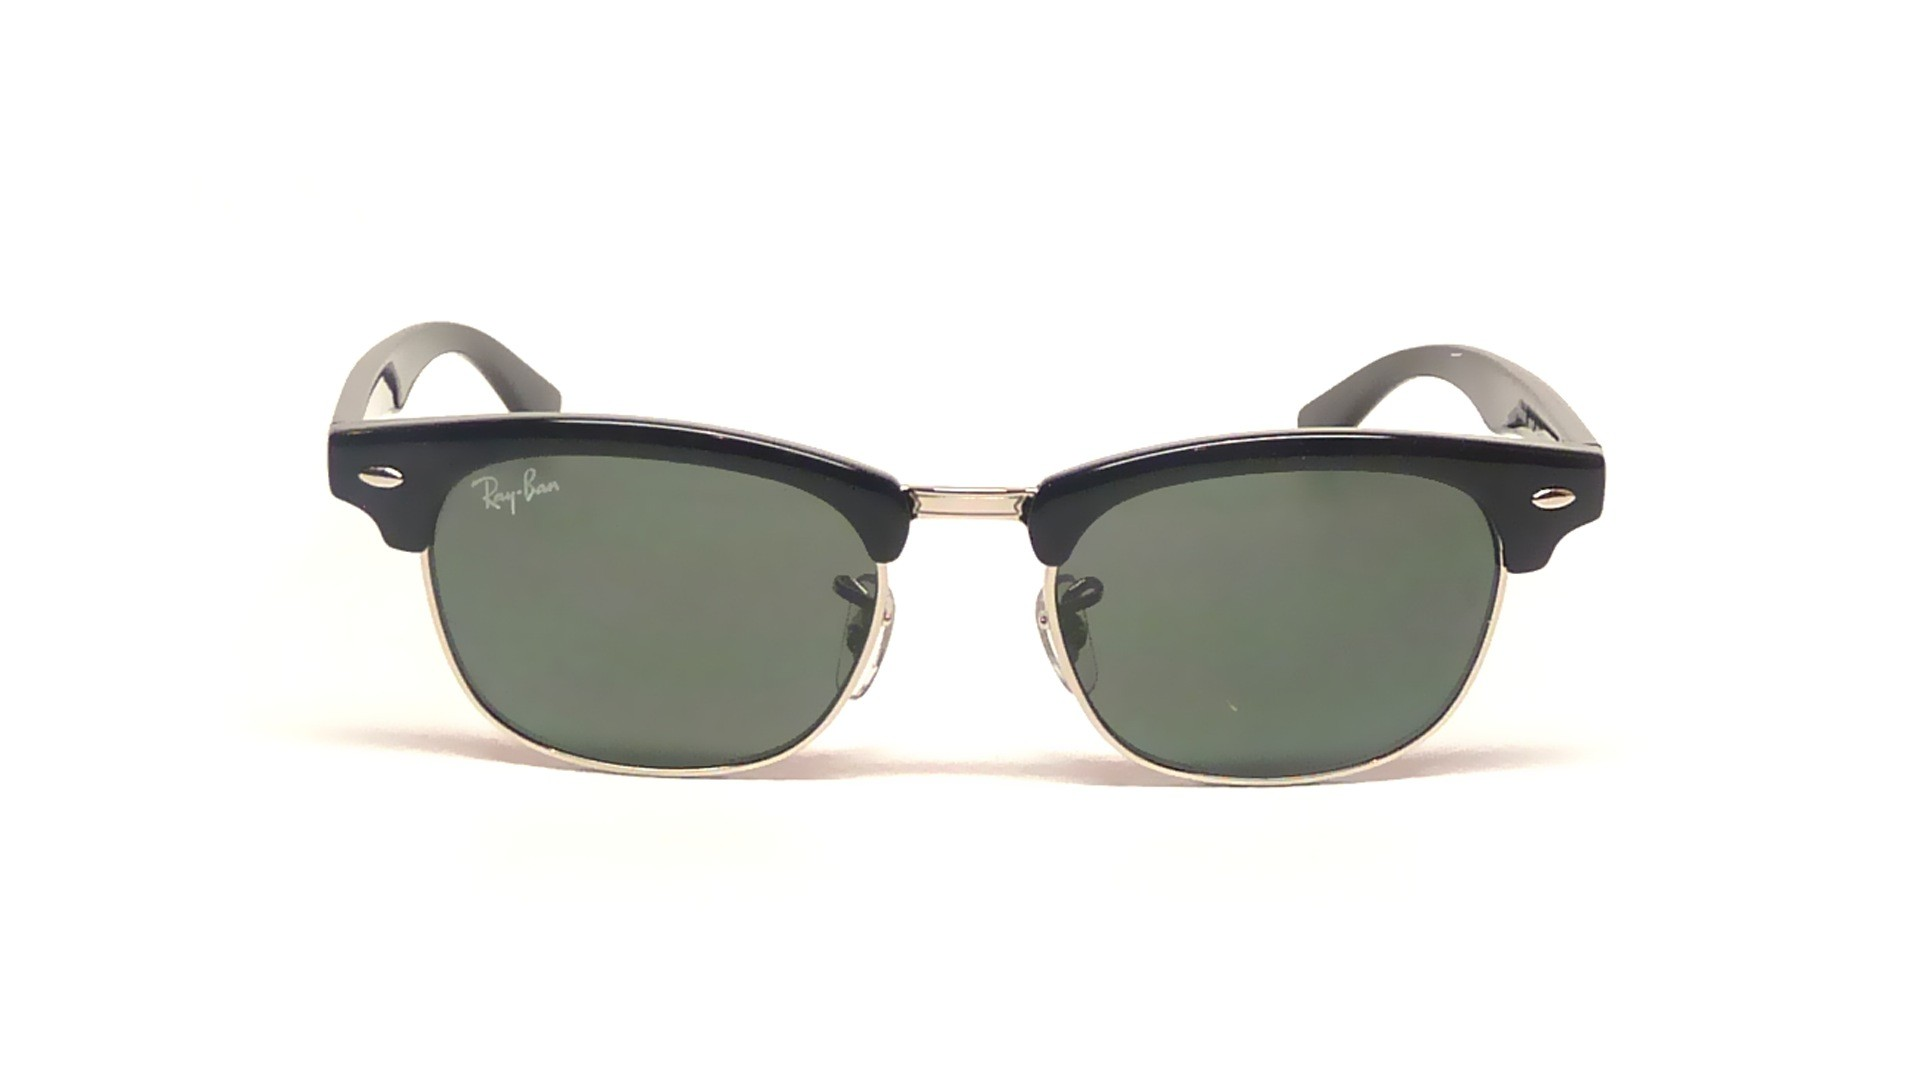 9afeffa78d235 Sunglasses Ray-Ban Clubmaster Black RJ9050S 100 71 45-16 Small